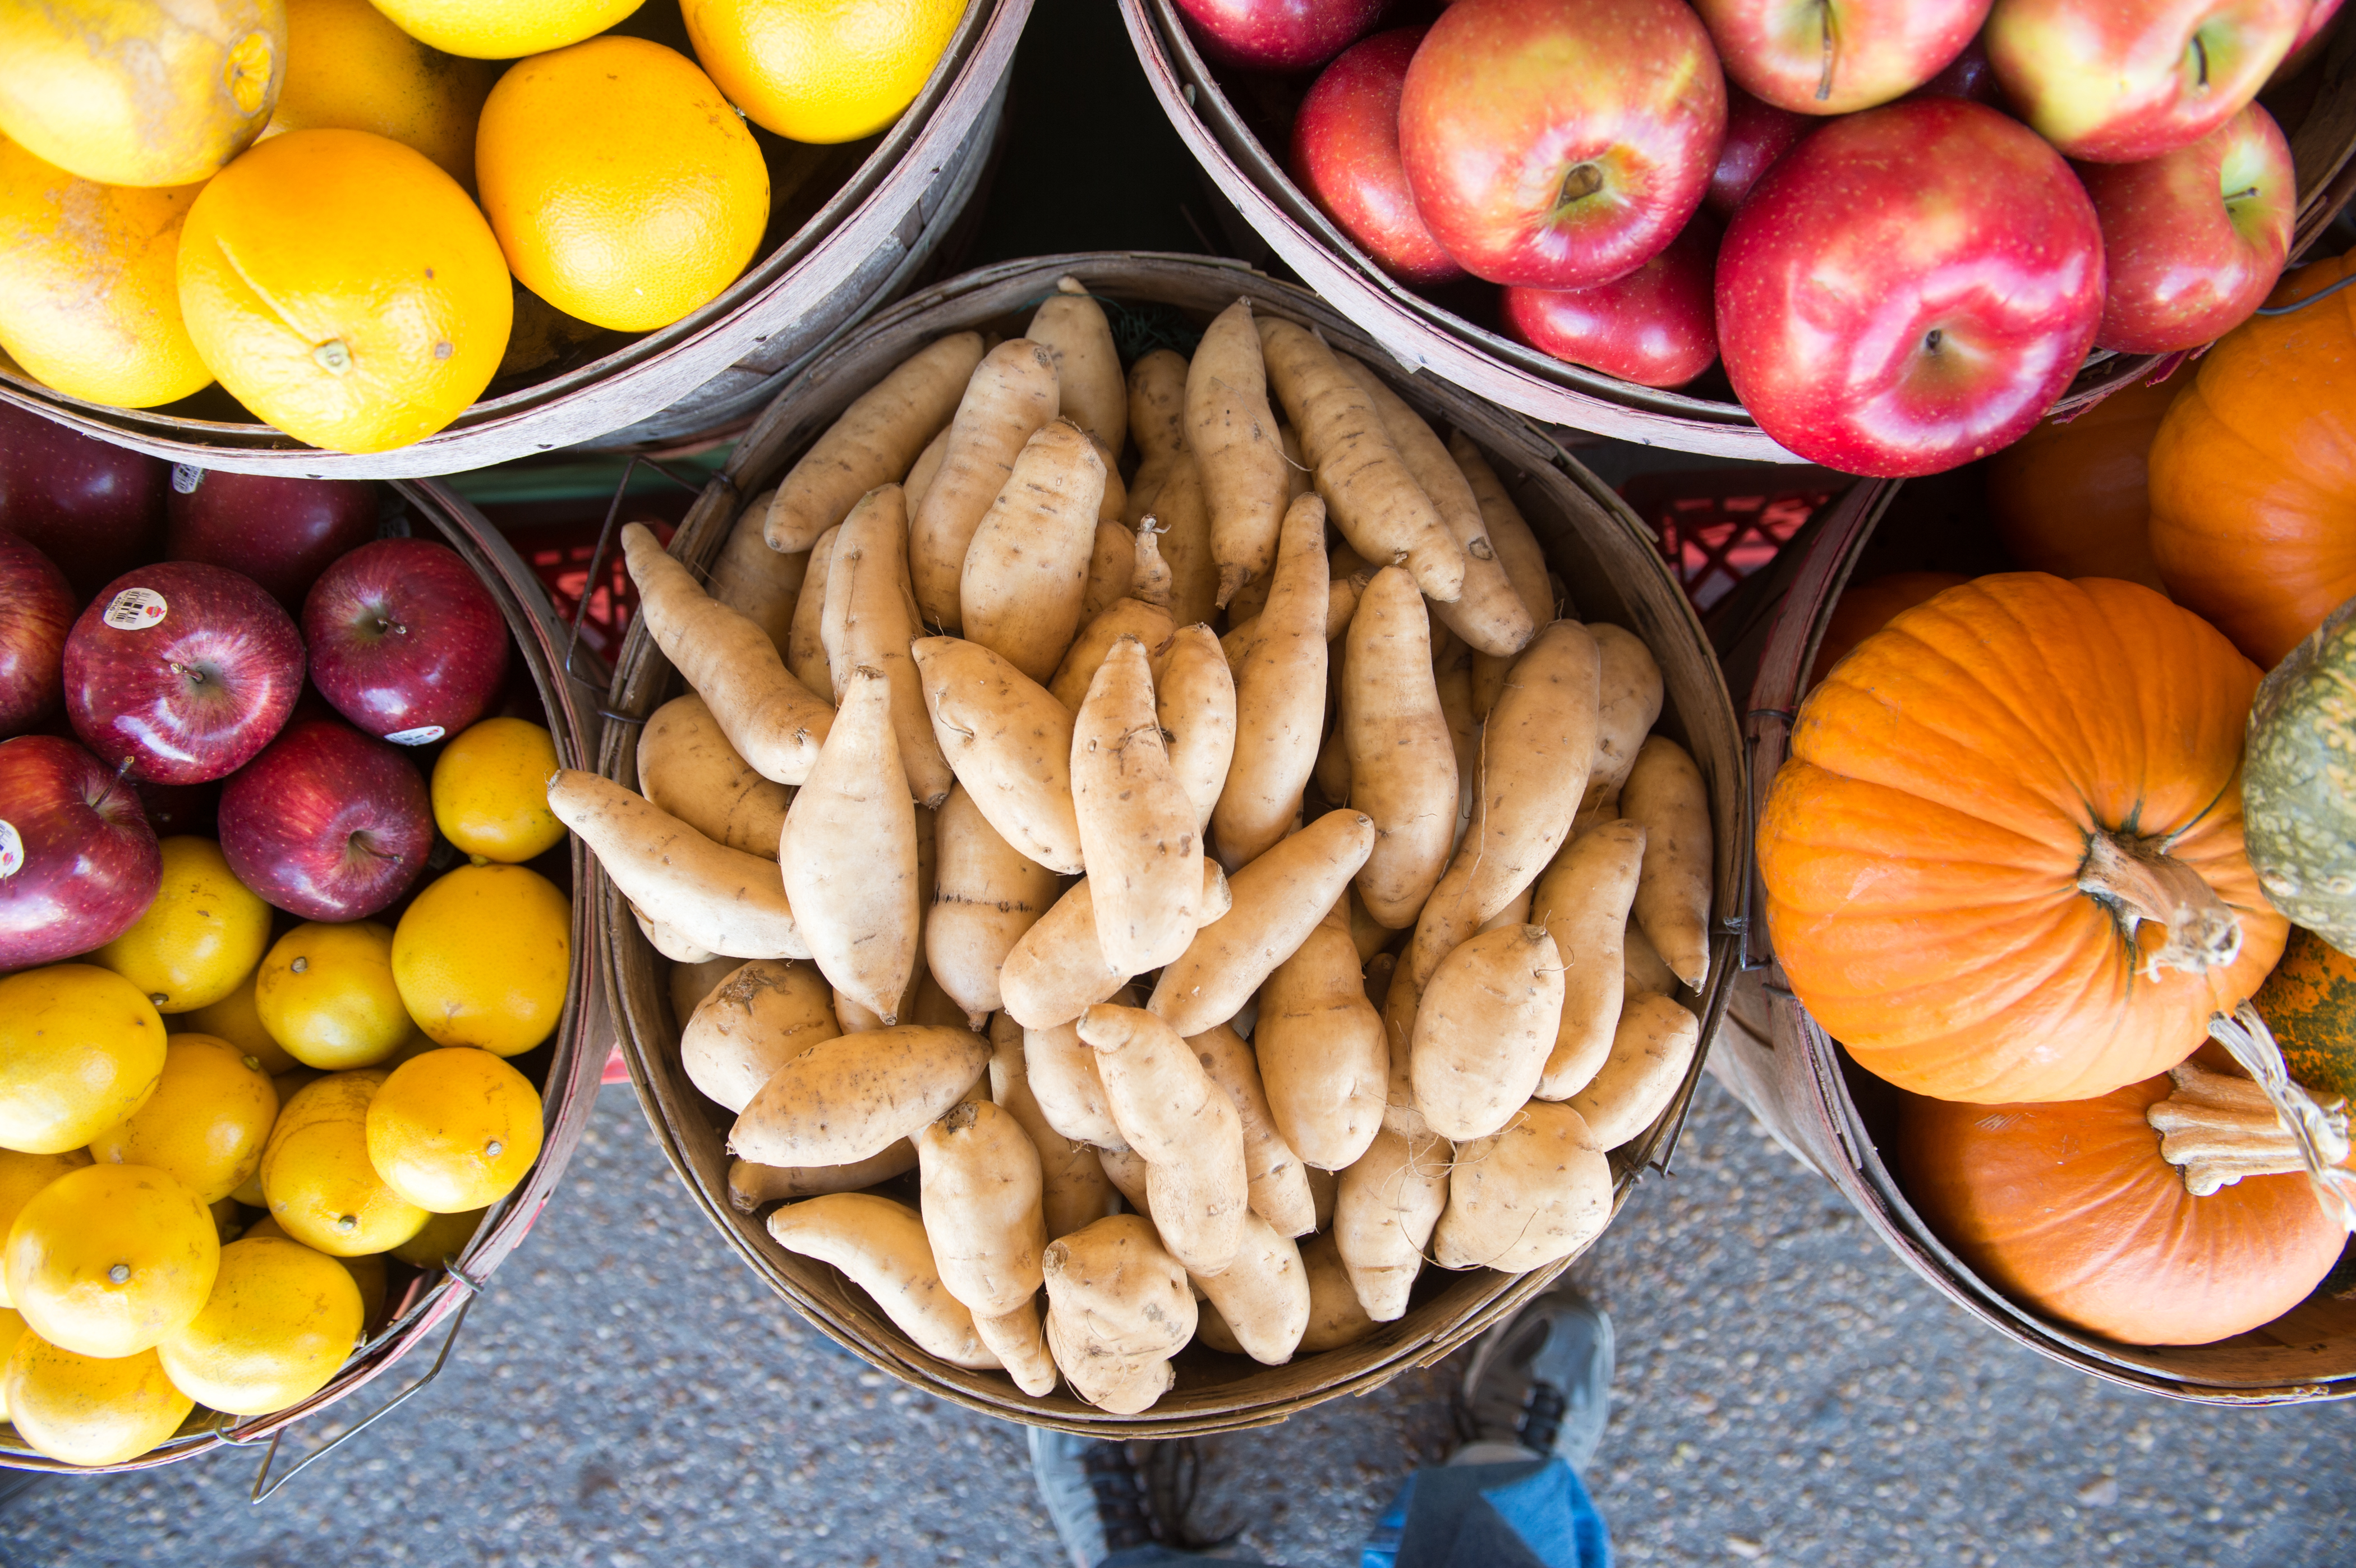 Potatoes, pumpkins, apples, and other produce arranged in buckets at a farmers market.